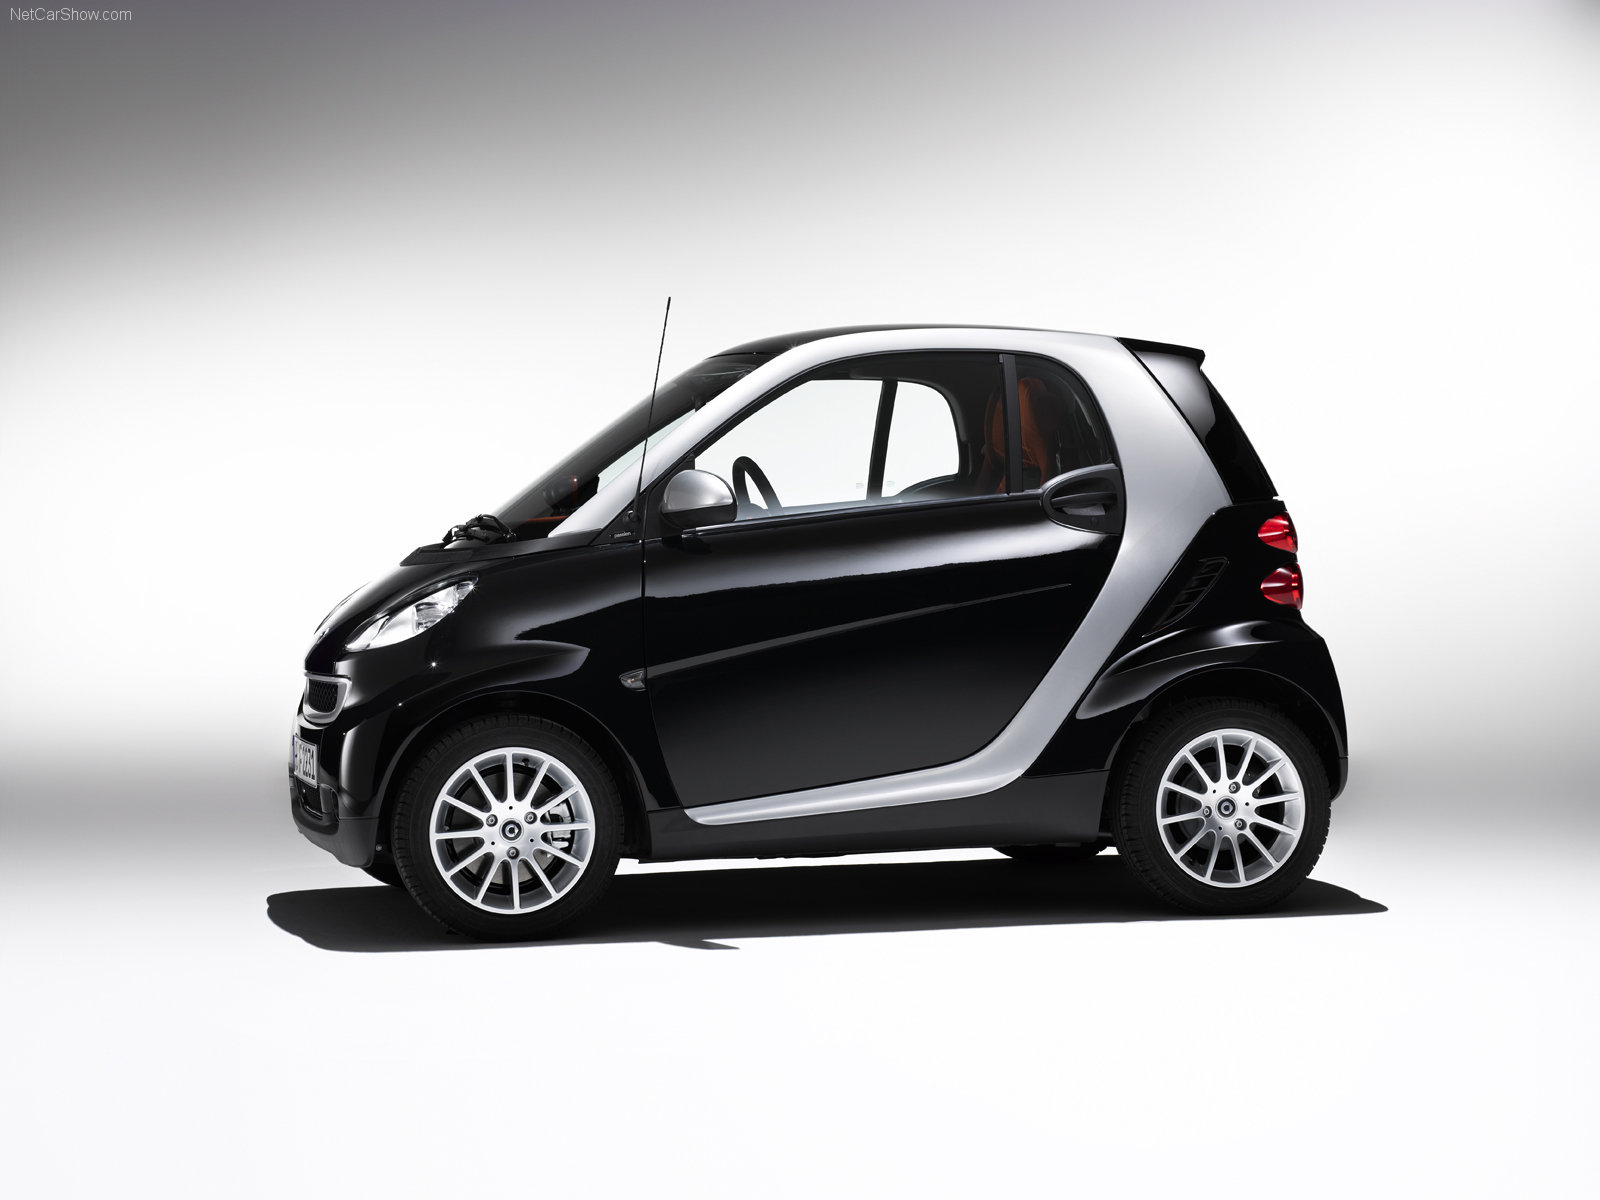 3dtuning of smart fortwo 3 door hatchback 2007 unique on line car configurator. Black Bedroom Furniture Sets. Home Design Ideas